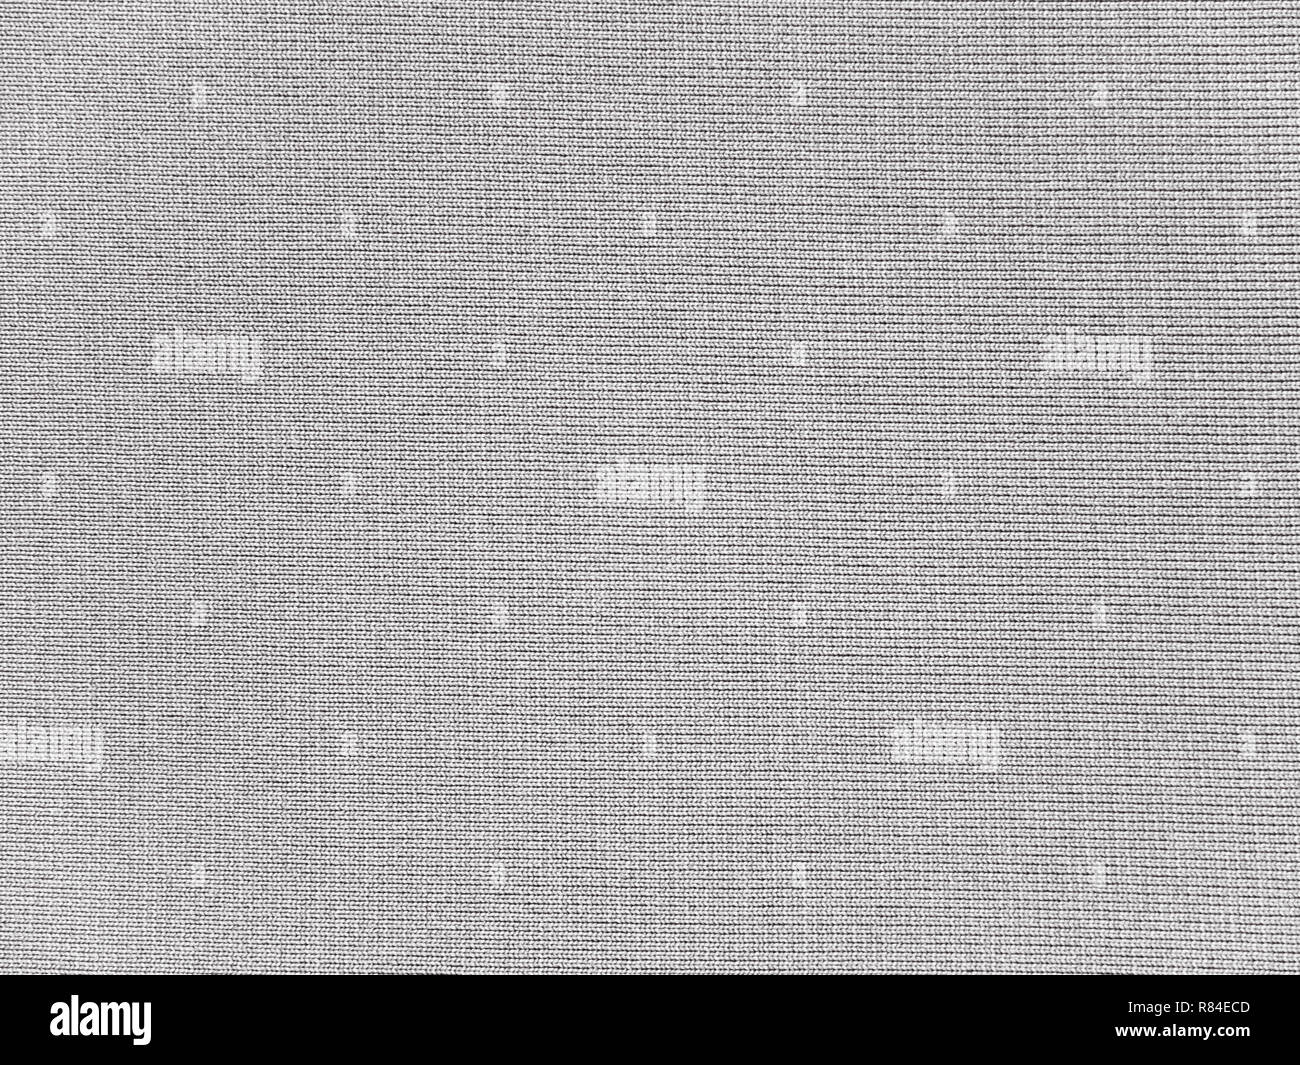 Medium gray polyester activewear fabric texture swatch. Synthetic material. - Stock Image